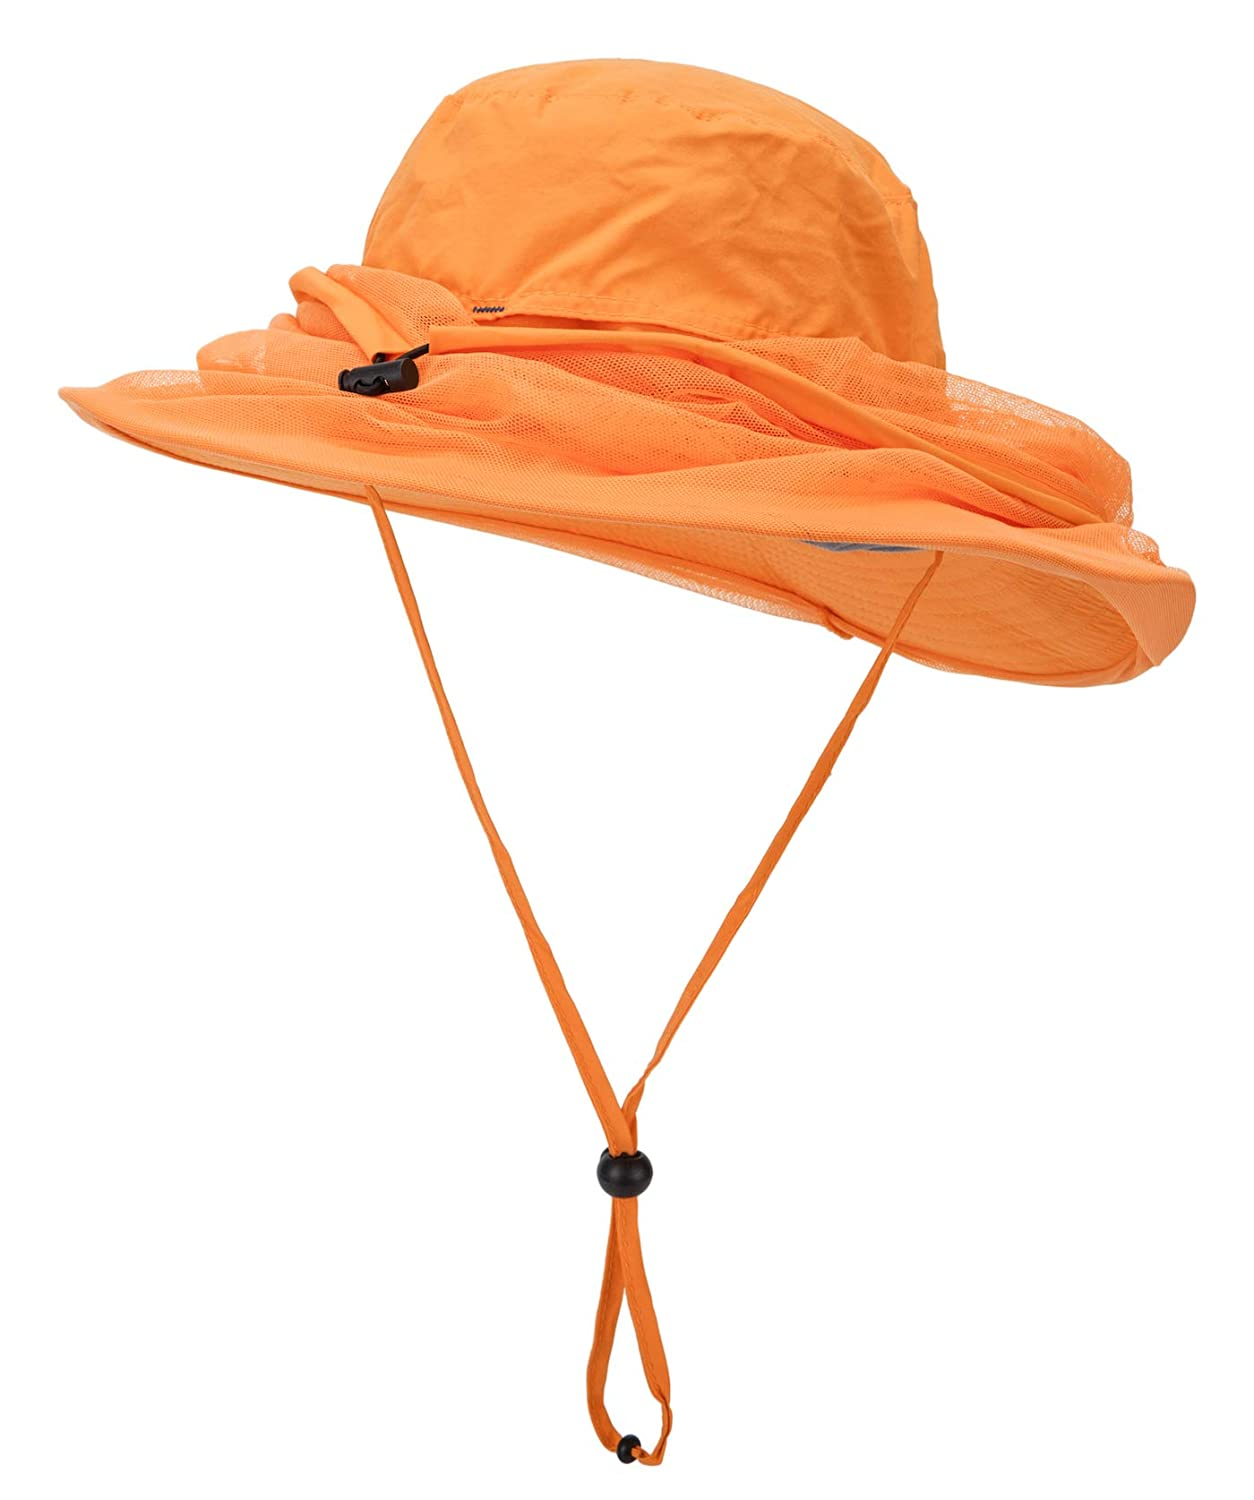 Decentron Outdoor Anti-mosquito Boonie Hat with Head Net Mesh Face Protection Fishing Hats